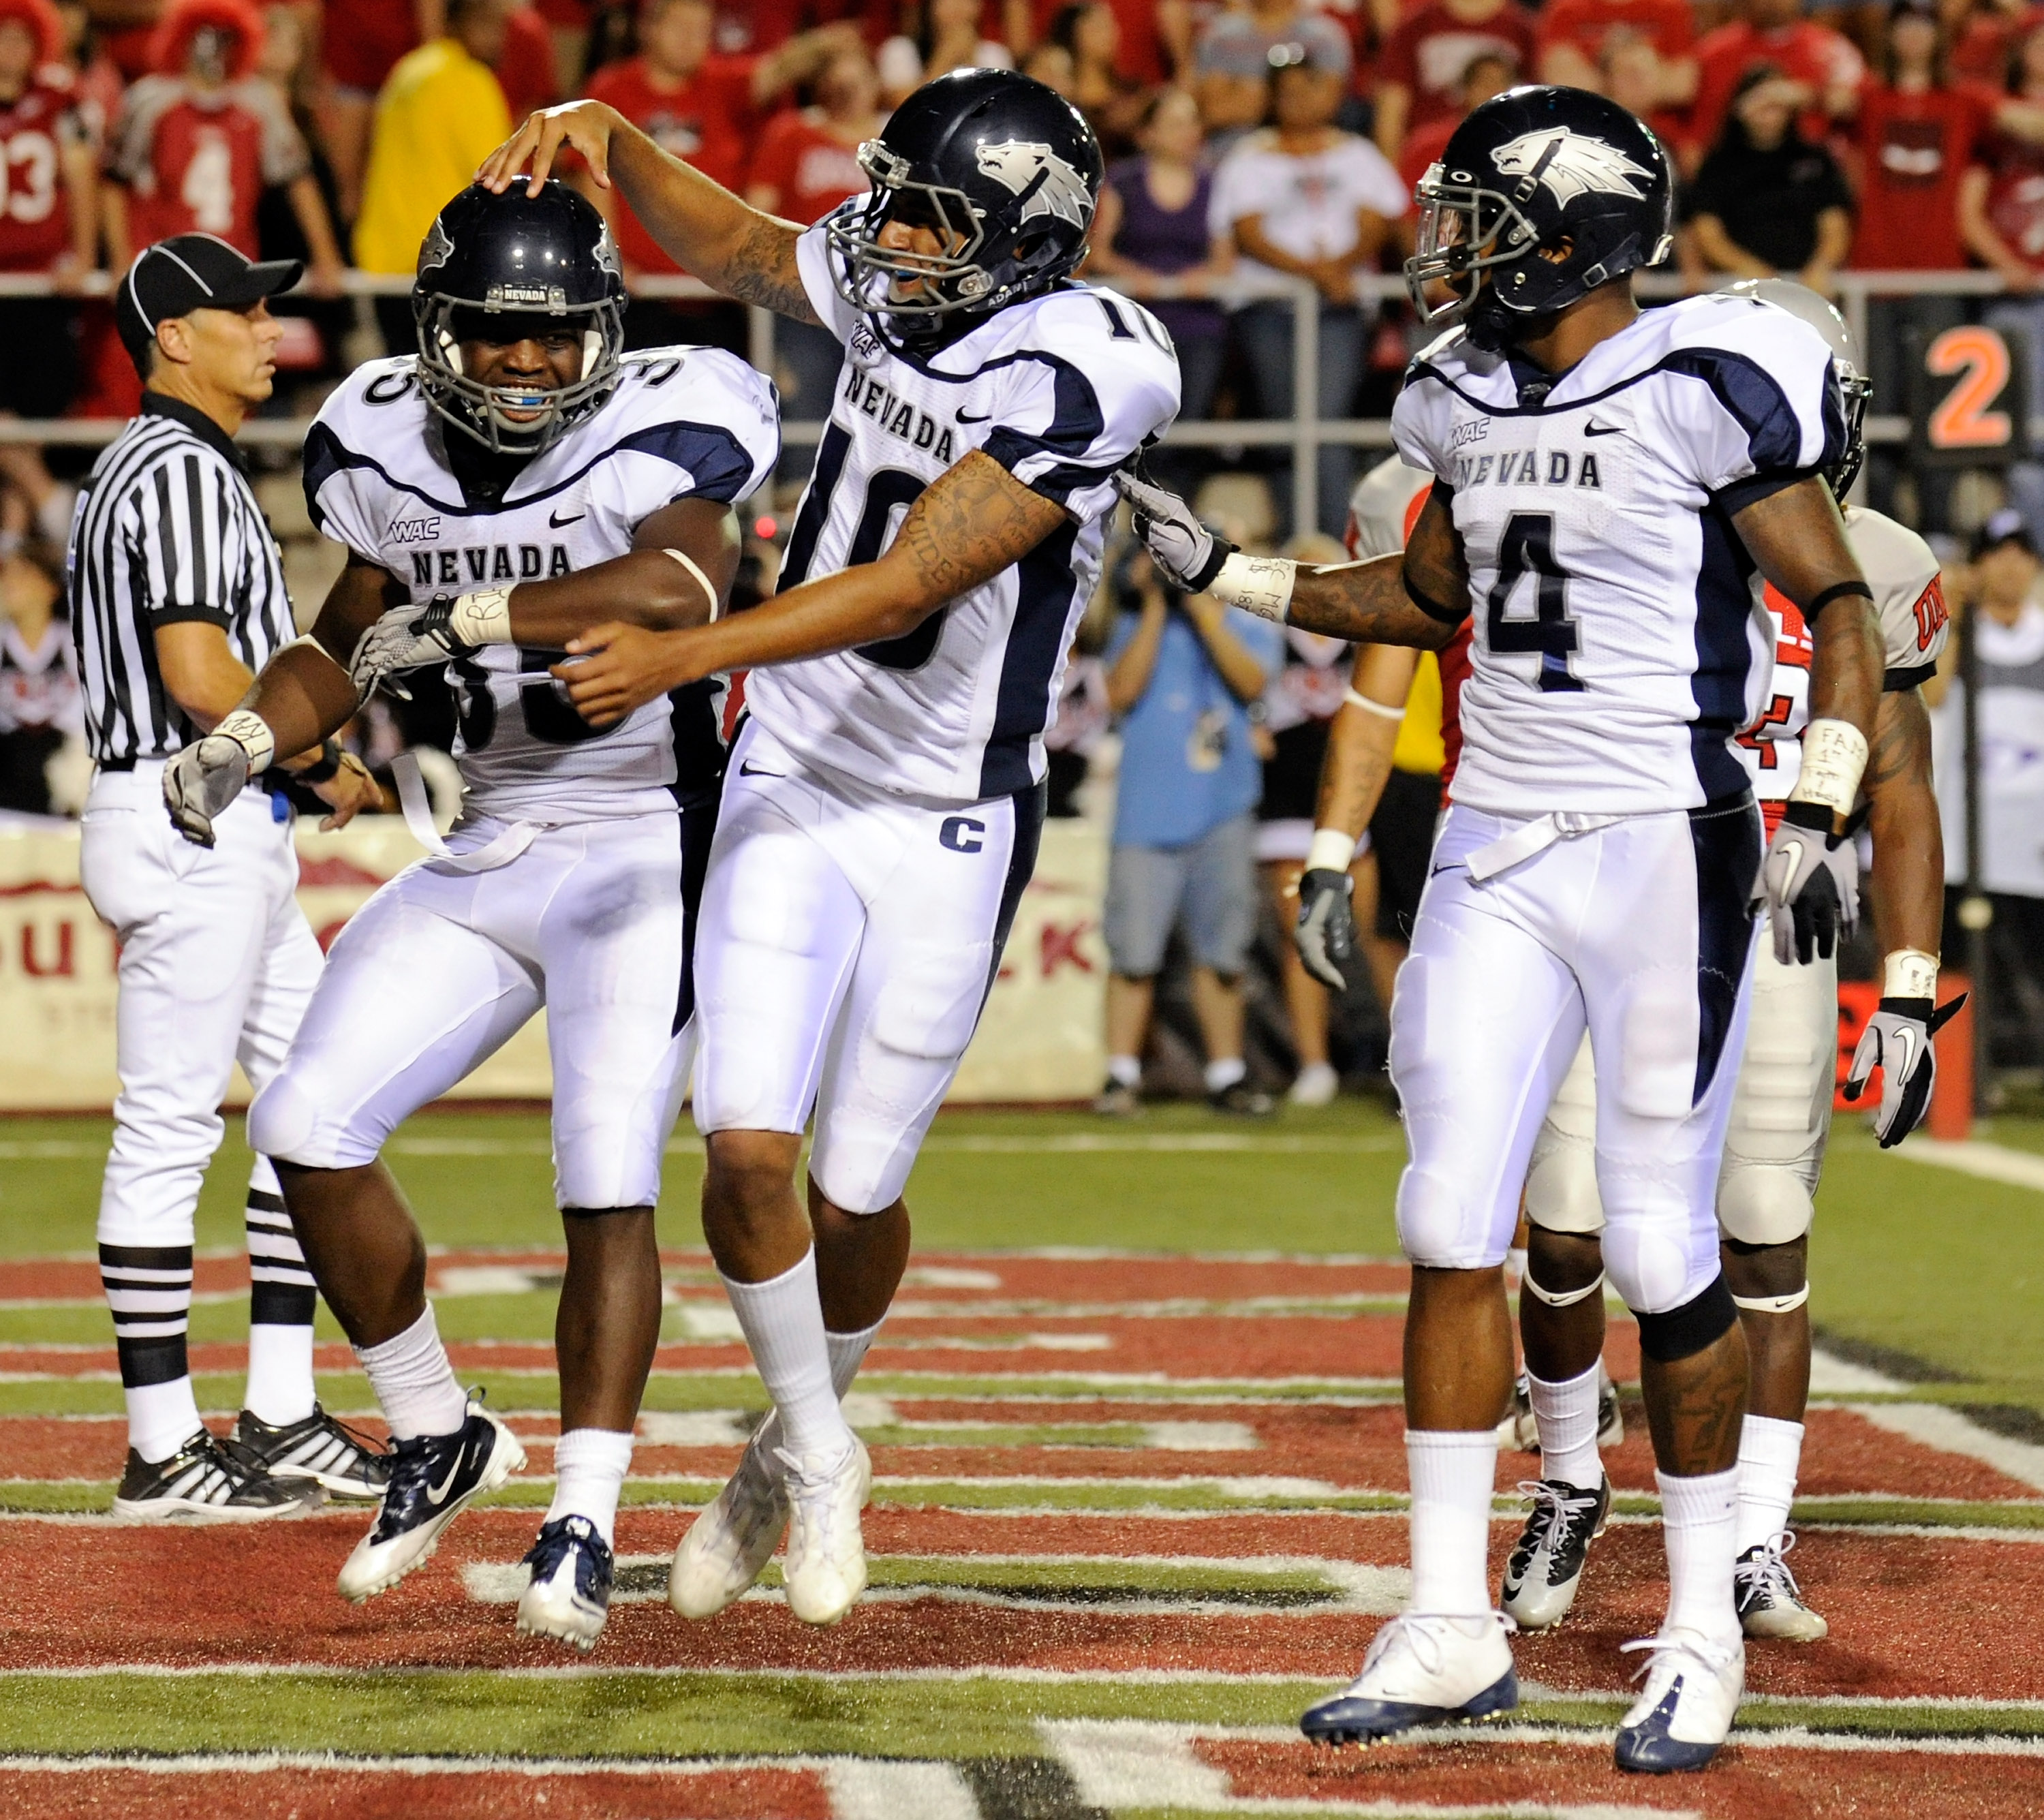 LAS VEGAS - OCTOBER 02:  (L-R) Courtney Randall #35 of the Nevada Reno Wolf Pack is congratulated by quarterback Colin Kaepernick #10 and Brandon Wimberly #4 after Randall scored a touchdown against the UNLV Rebels in the second quarter of their game at S